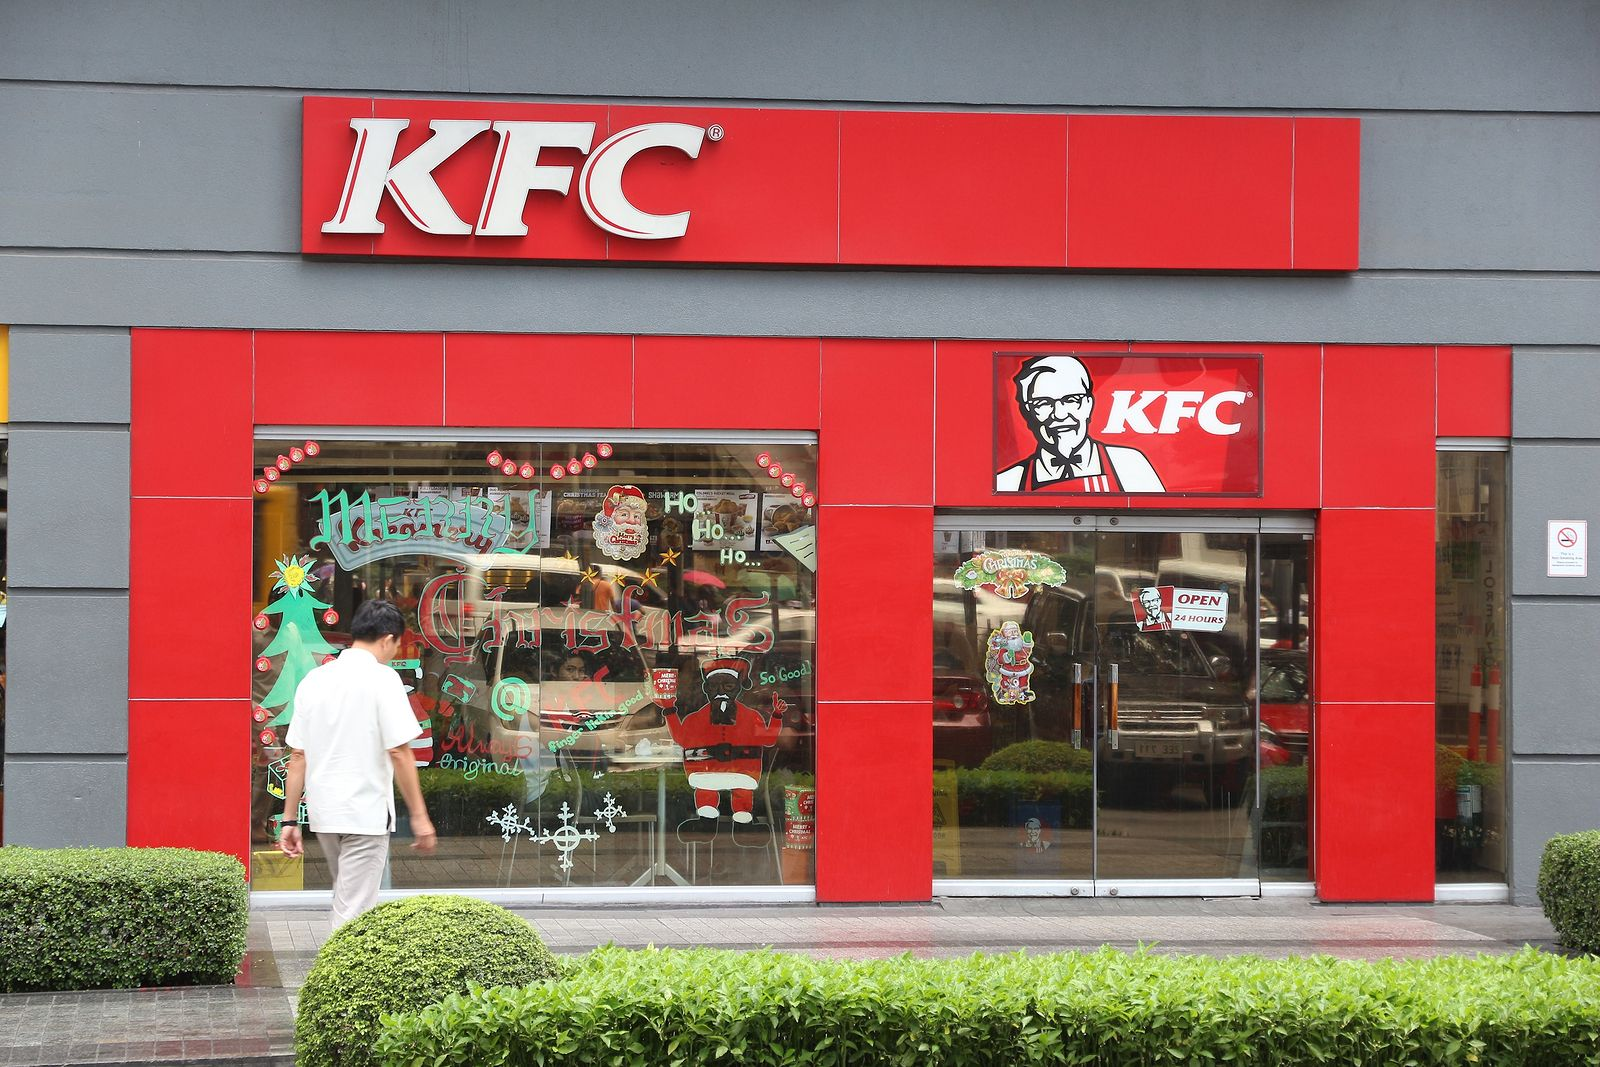 Aussie KFC stores deliver for Restaurant Brands | Inside Franchise Business